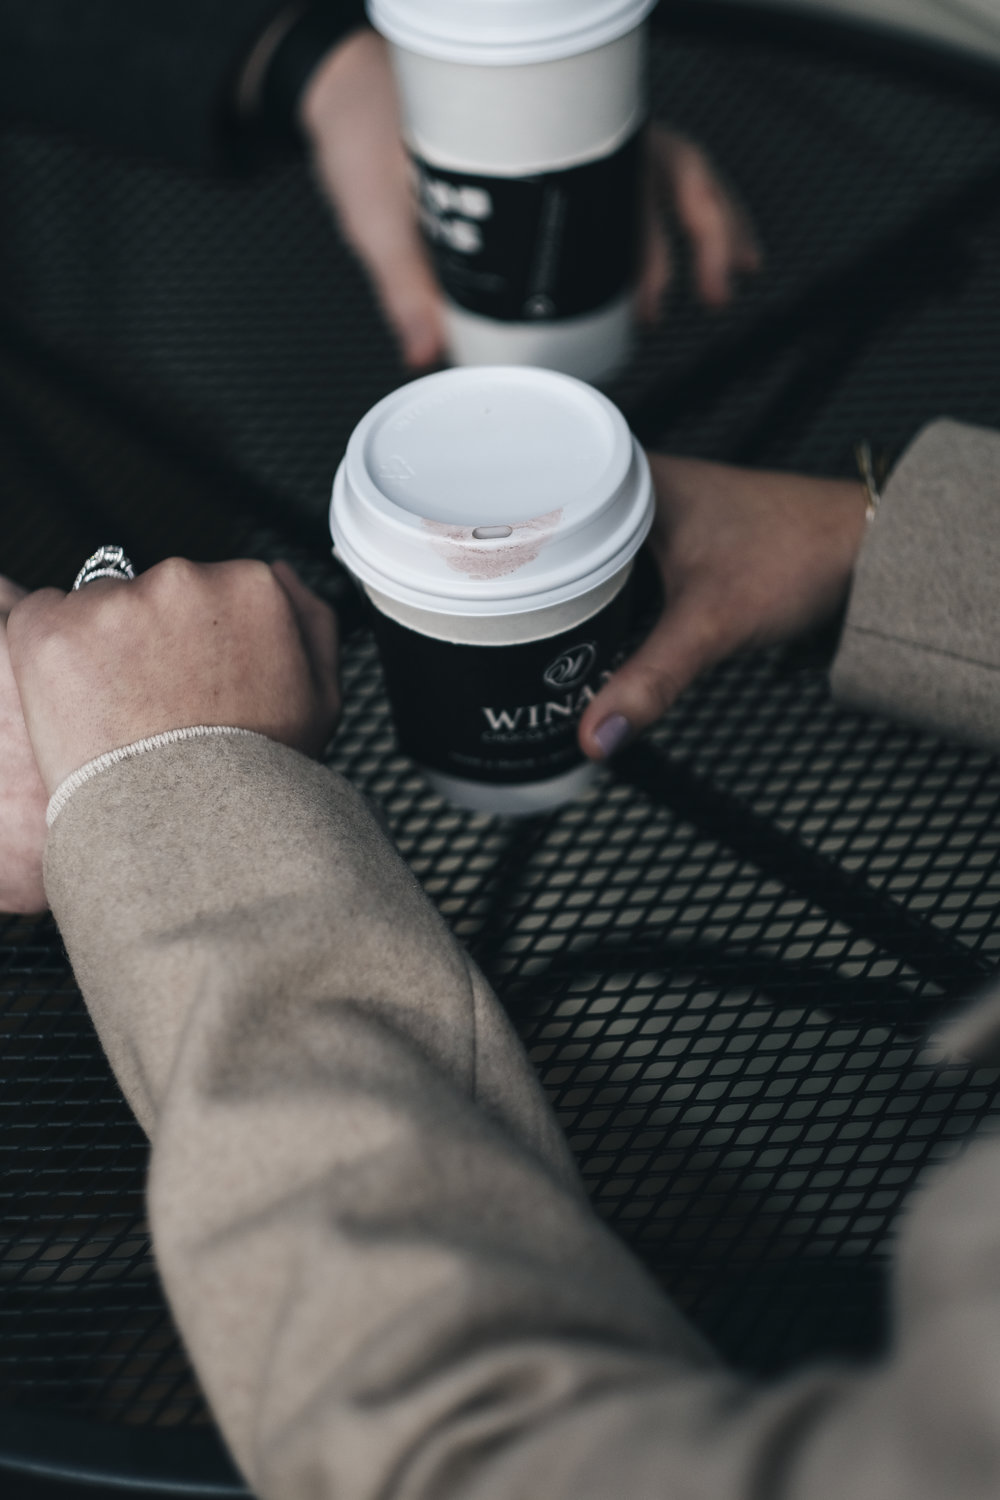 Lipstick stain on coffee cup during engagement session in Columbus, Ohio.